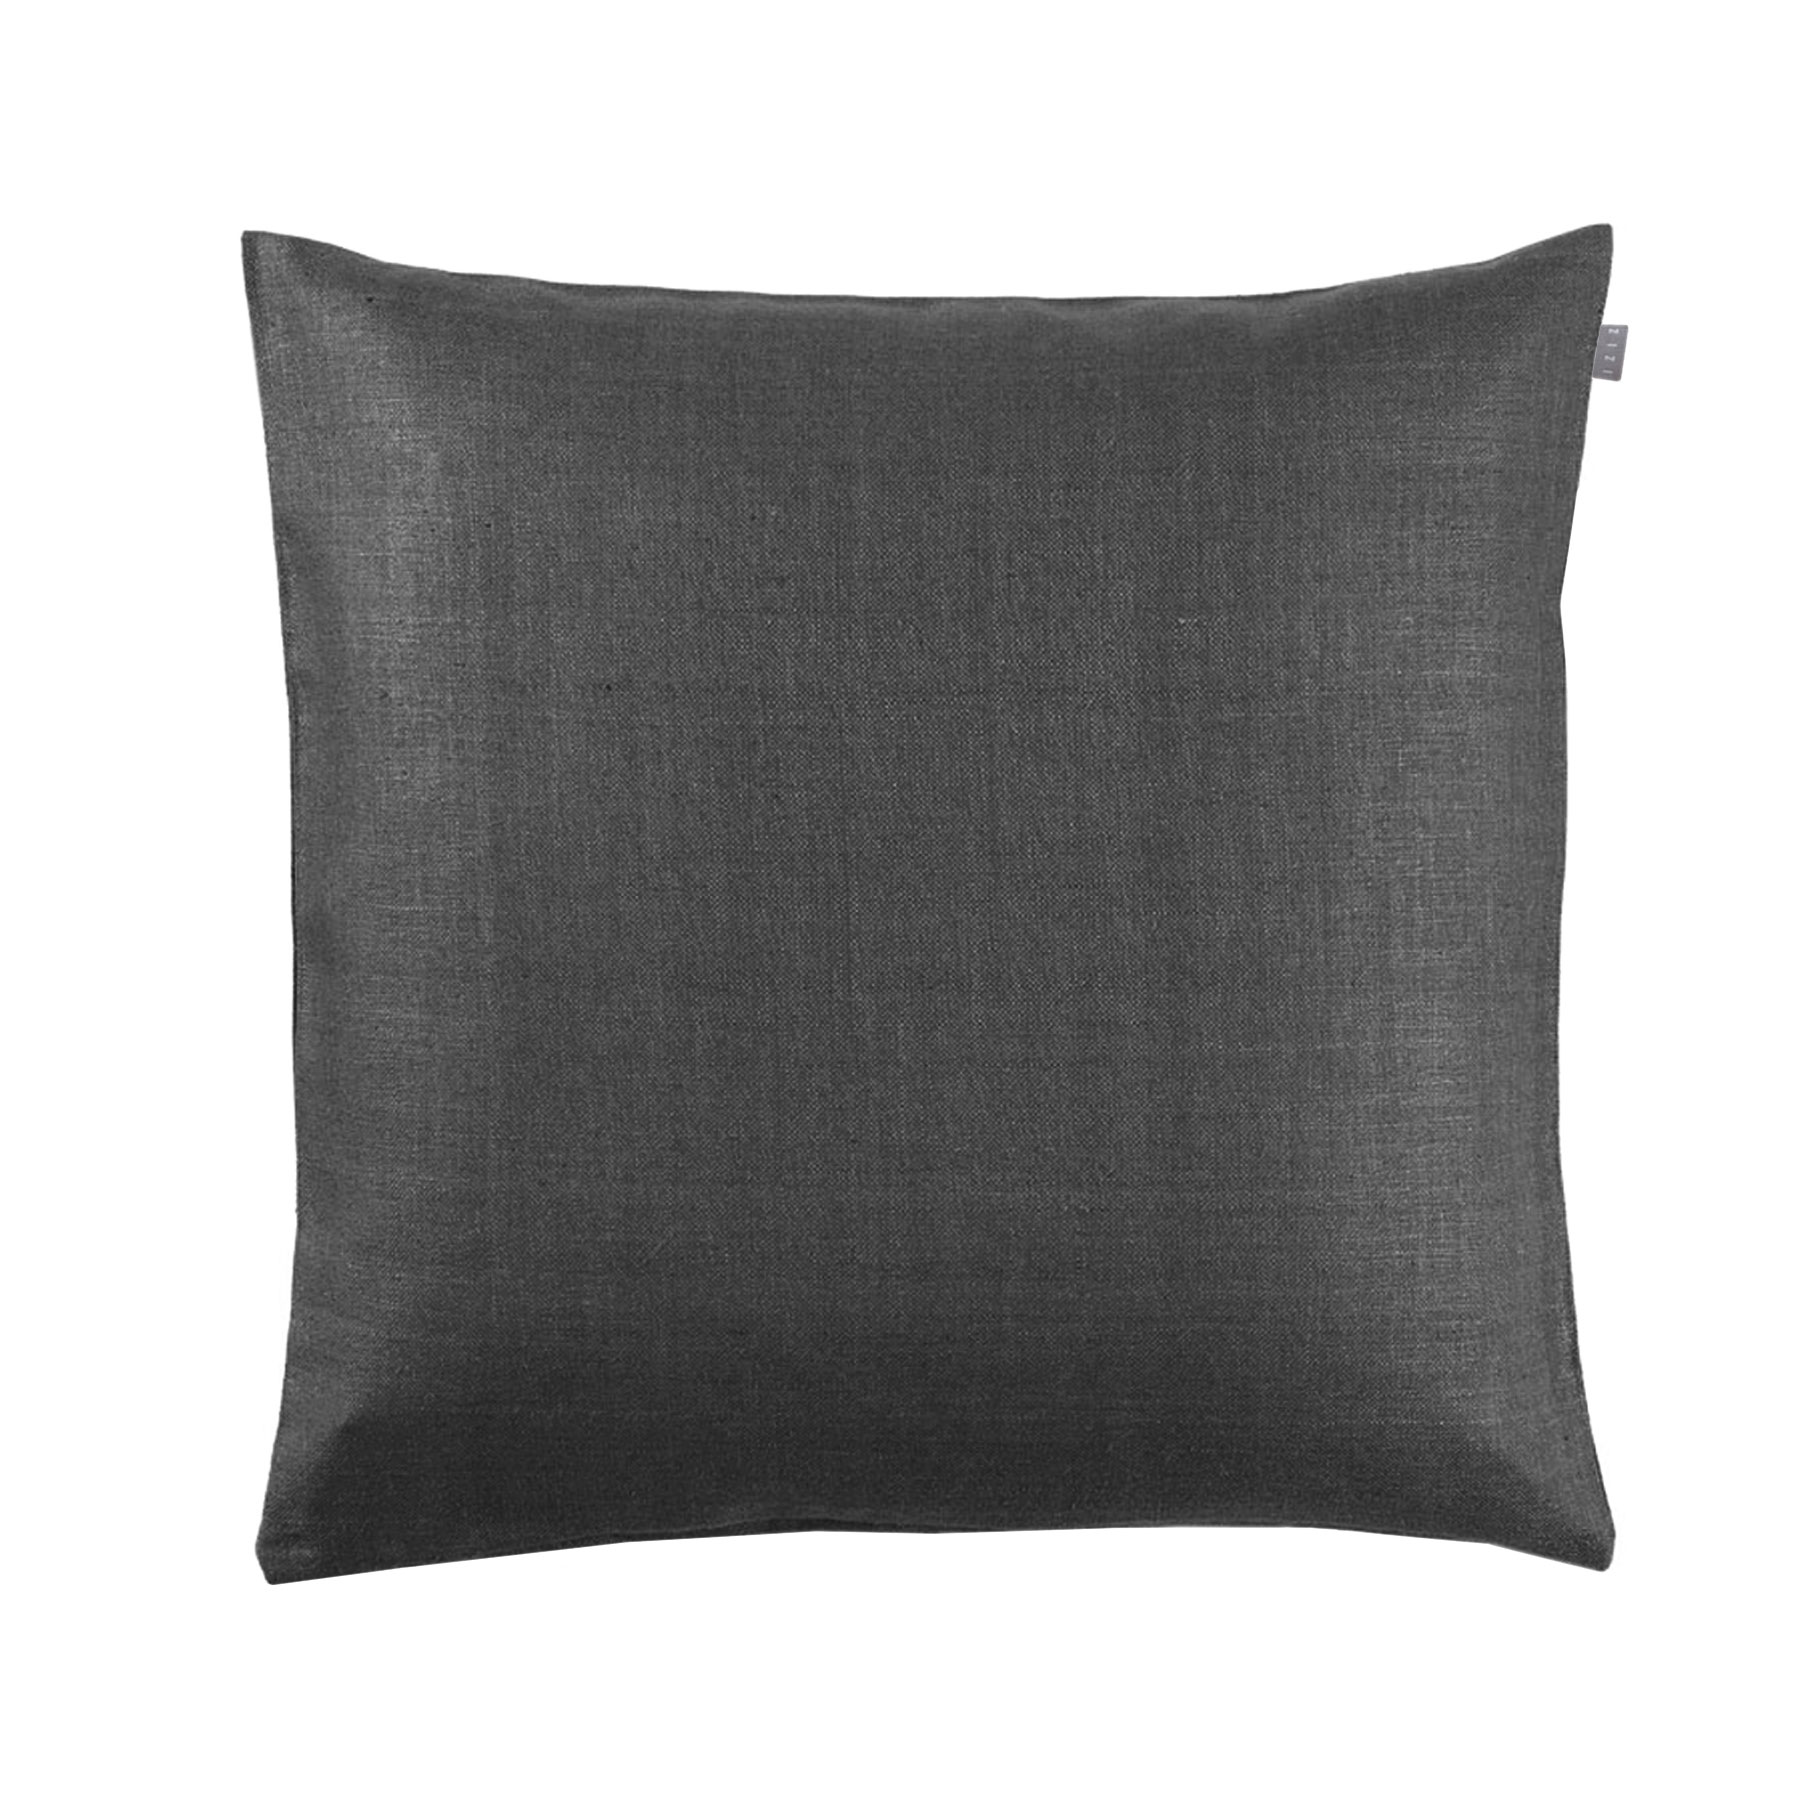 CUSHION COVER PLAIN <br />asphalt gray